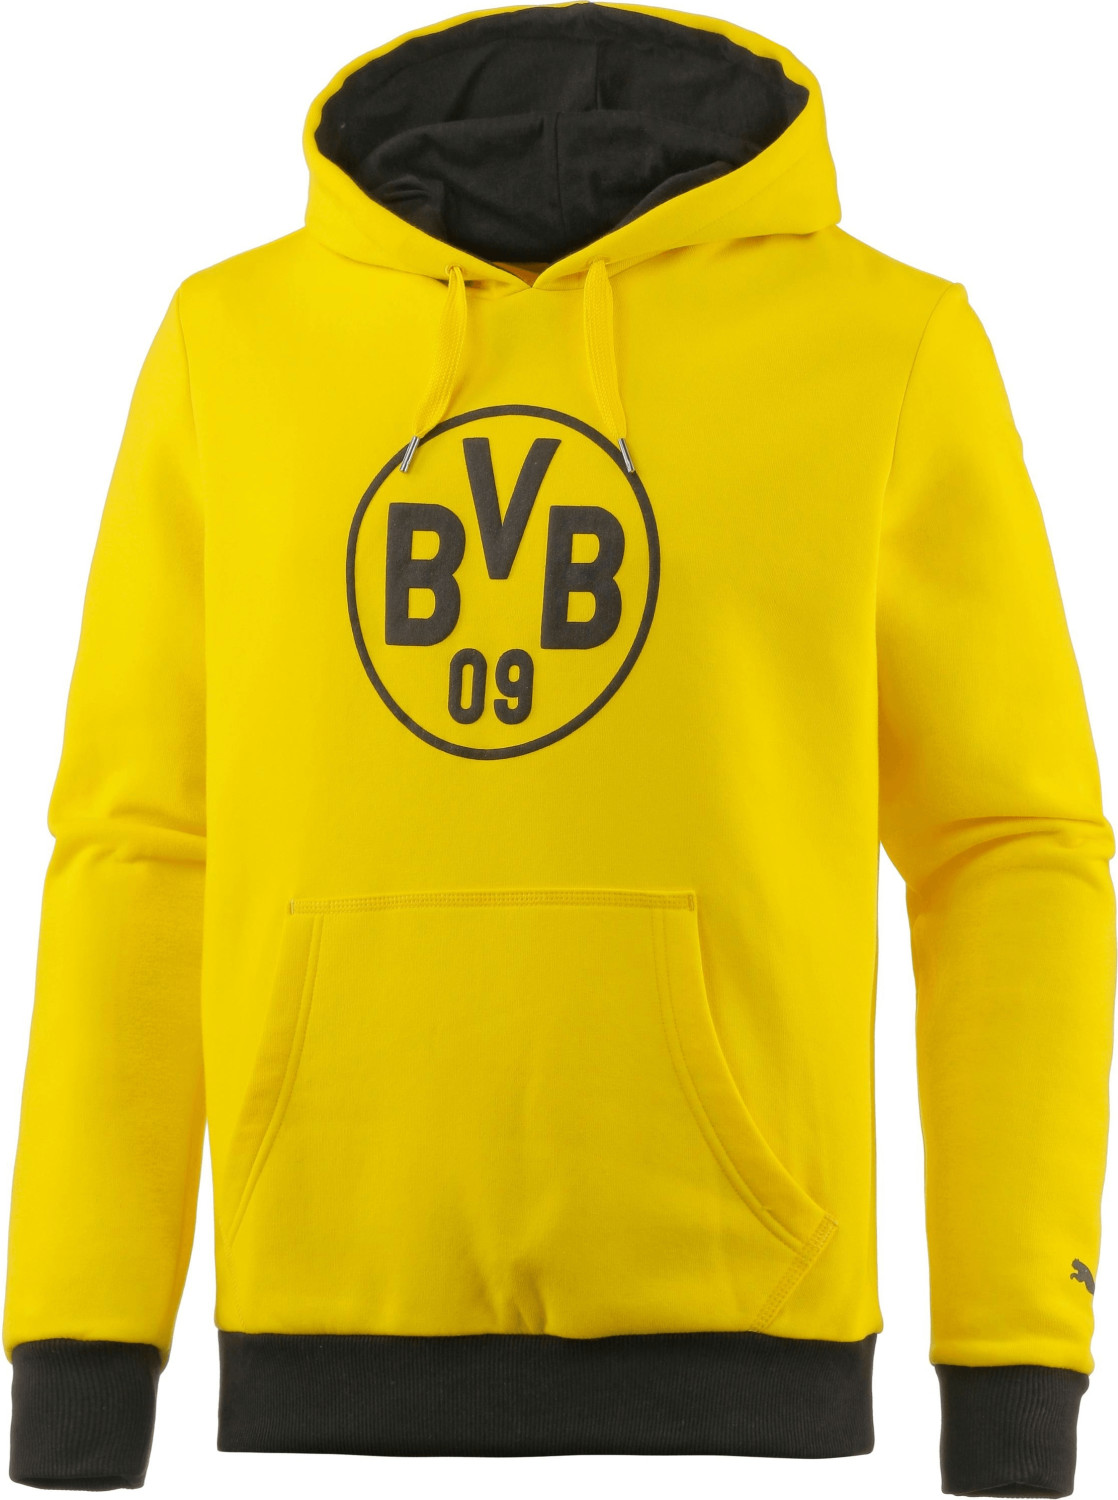 Puma BVB Pullover Wappen Hoodie cyber yellow/black